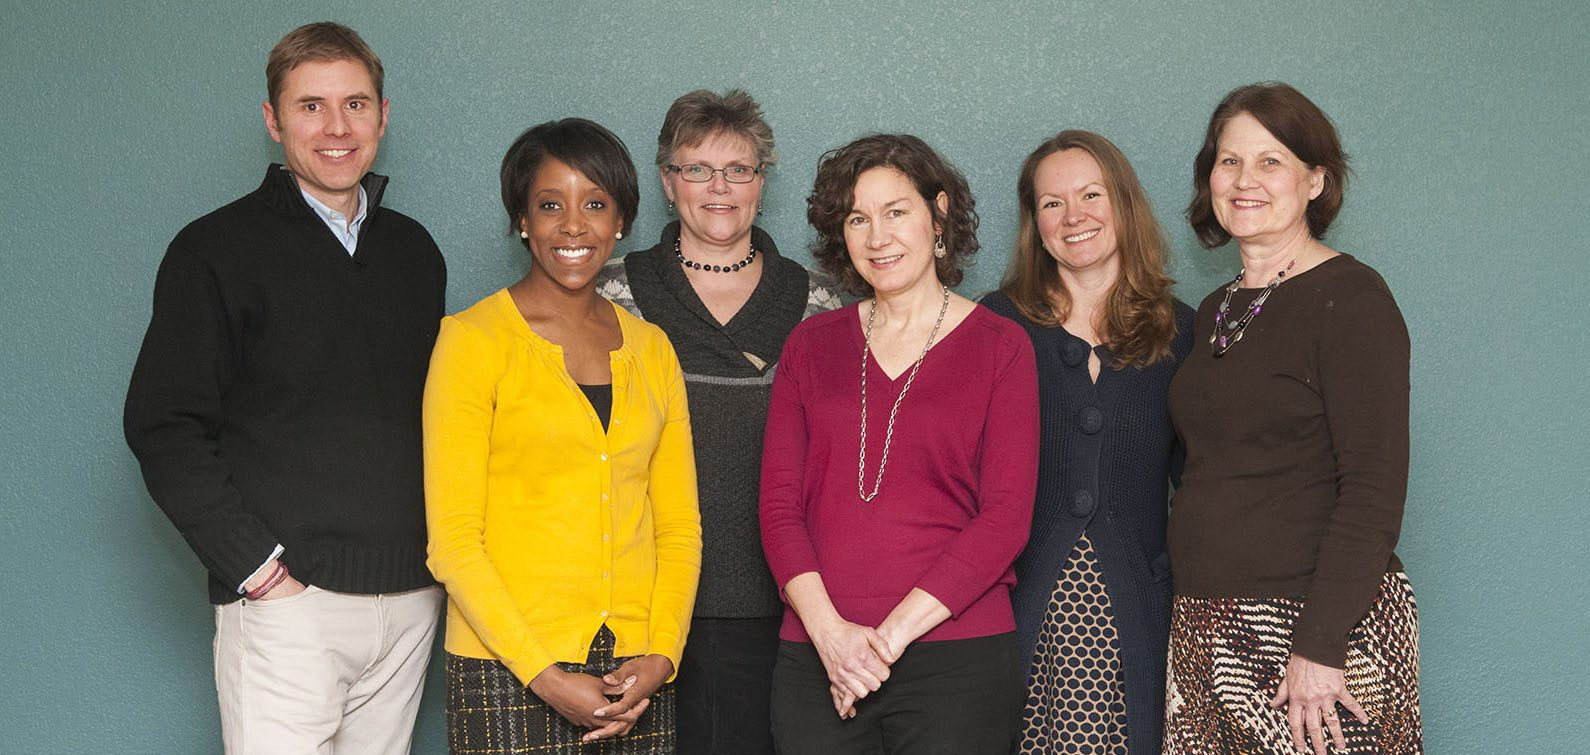 Augsburg University Center for Wellness and Counselling - Staff